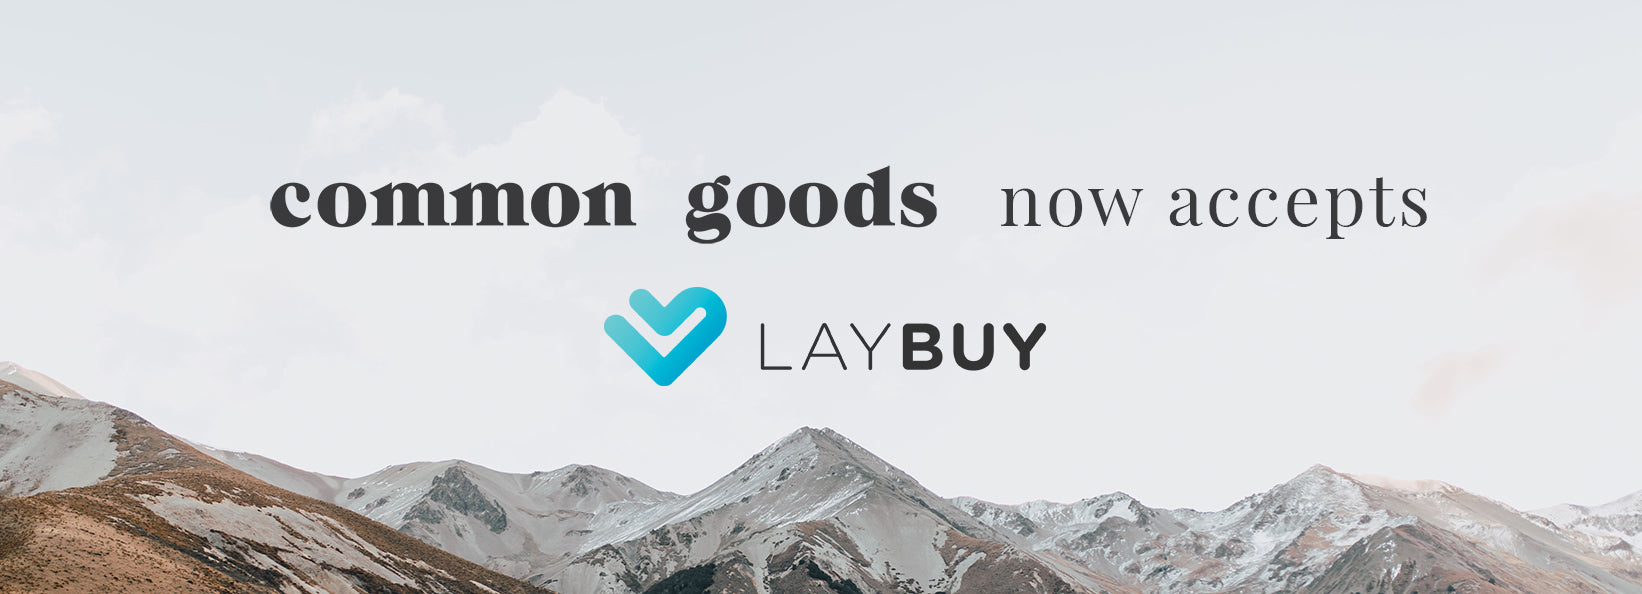 Laybuy Common Goods Banner